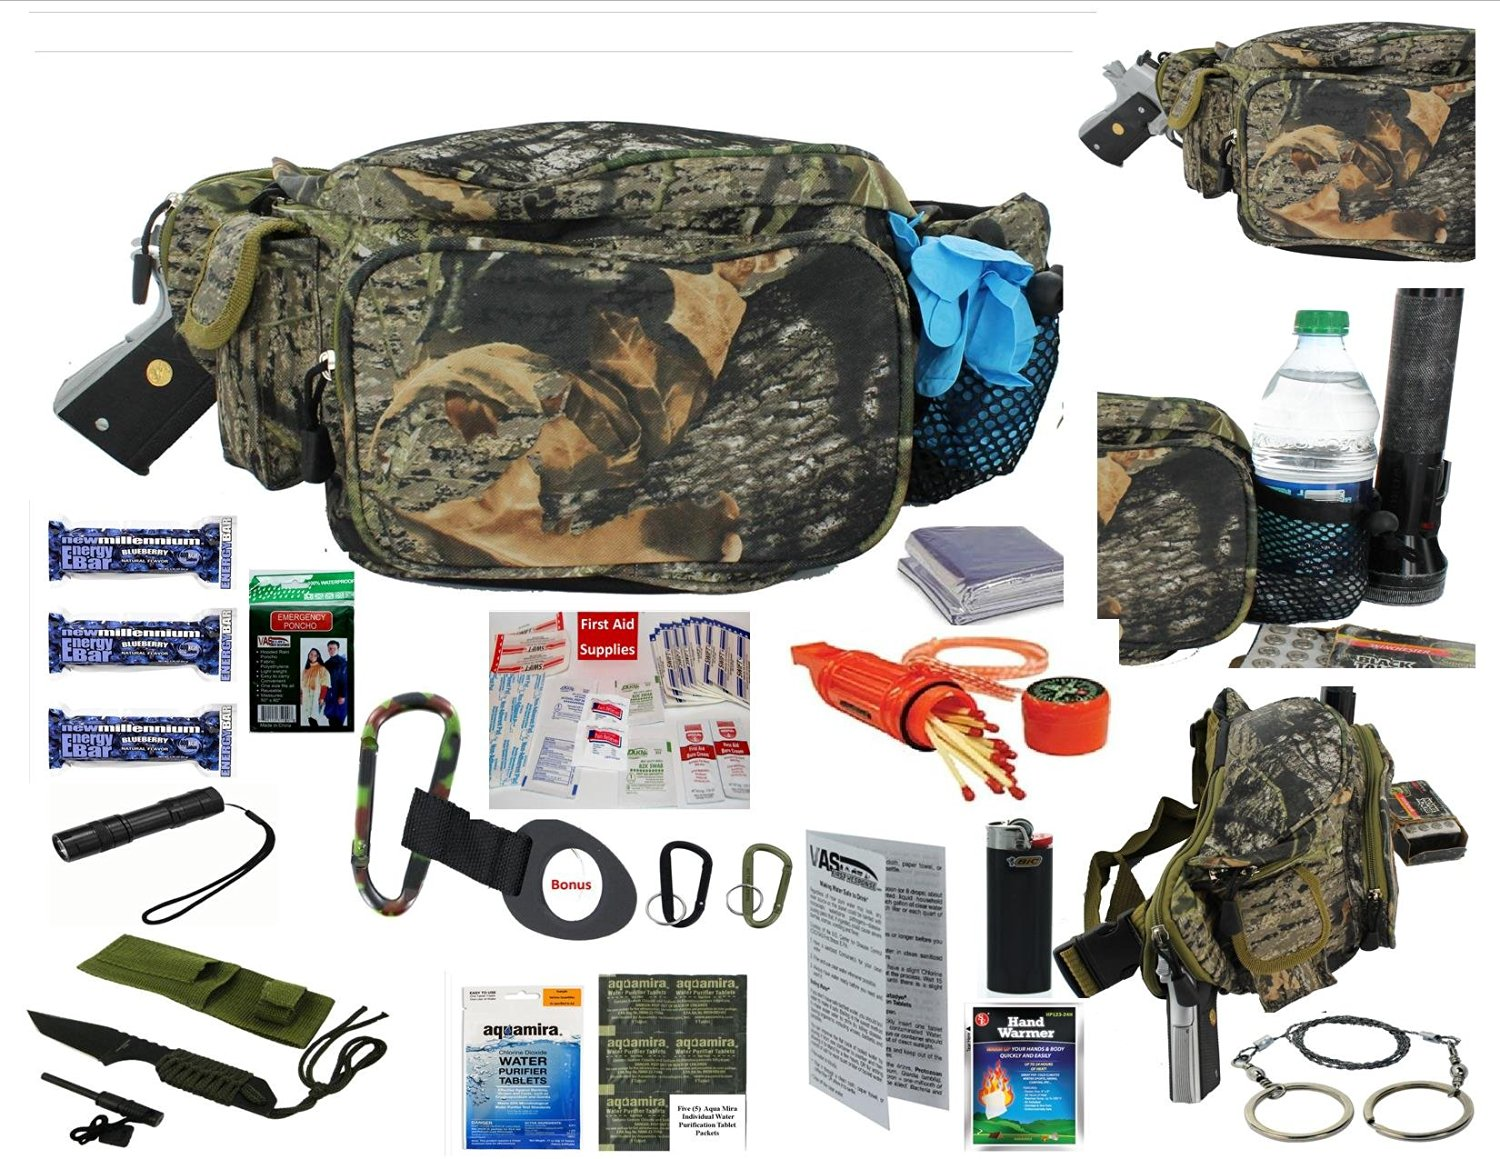 Buy SIS HUNTERS HUNTING CCW EMERGENCY SURVIVAL KIT FANNY PACK -WILDLAND  MOSSY OAK REALTREE CAMO in Cheap Price on Alibaba.com